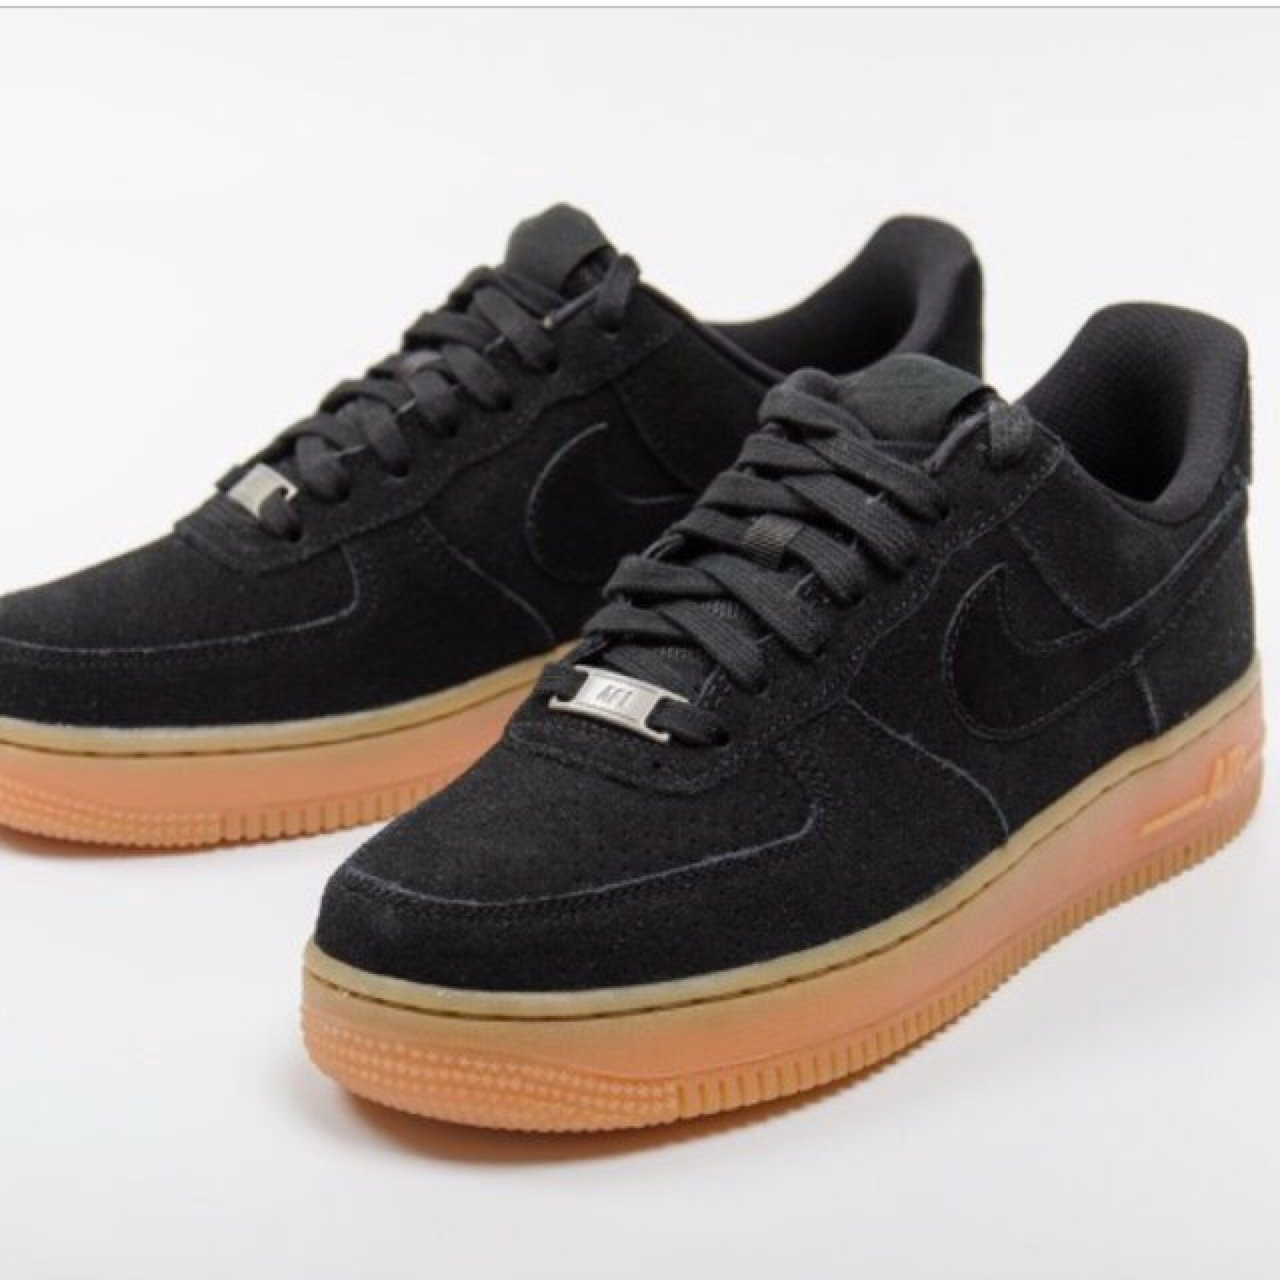 save off bcb01 3897f  abizzie. 3 years ago. Hutton, Preston, Lancashire PR4, UK. Nike Air Force  1 Black Suede   Gum Sole.